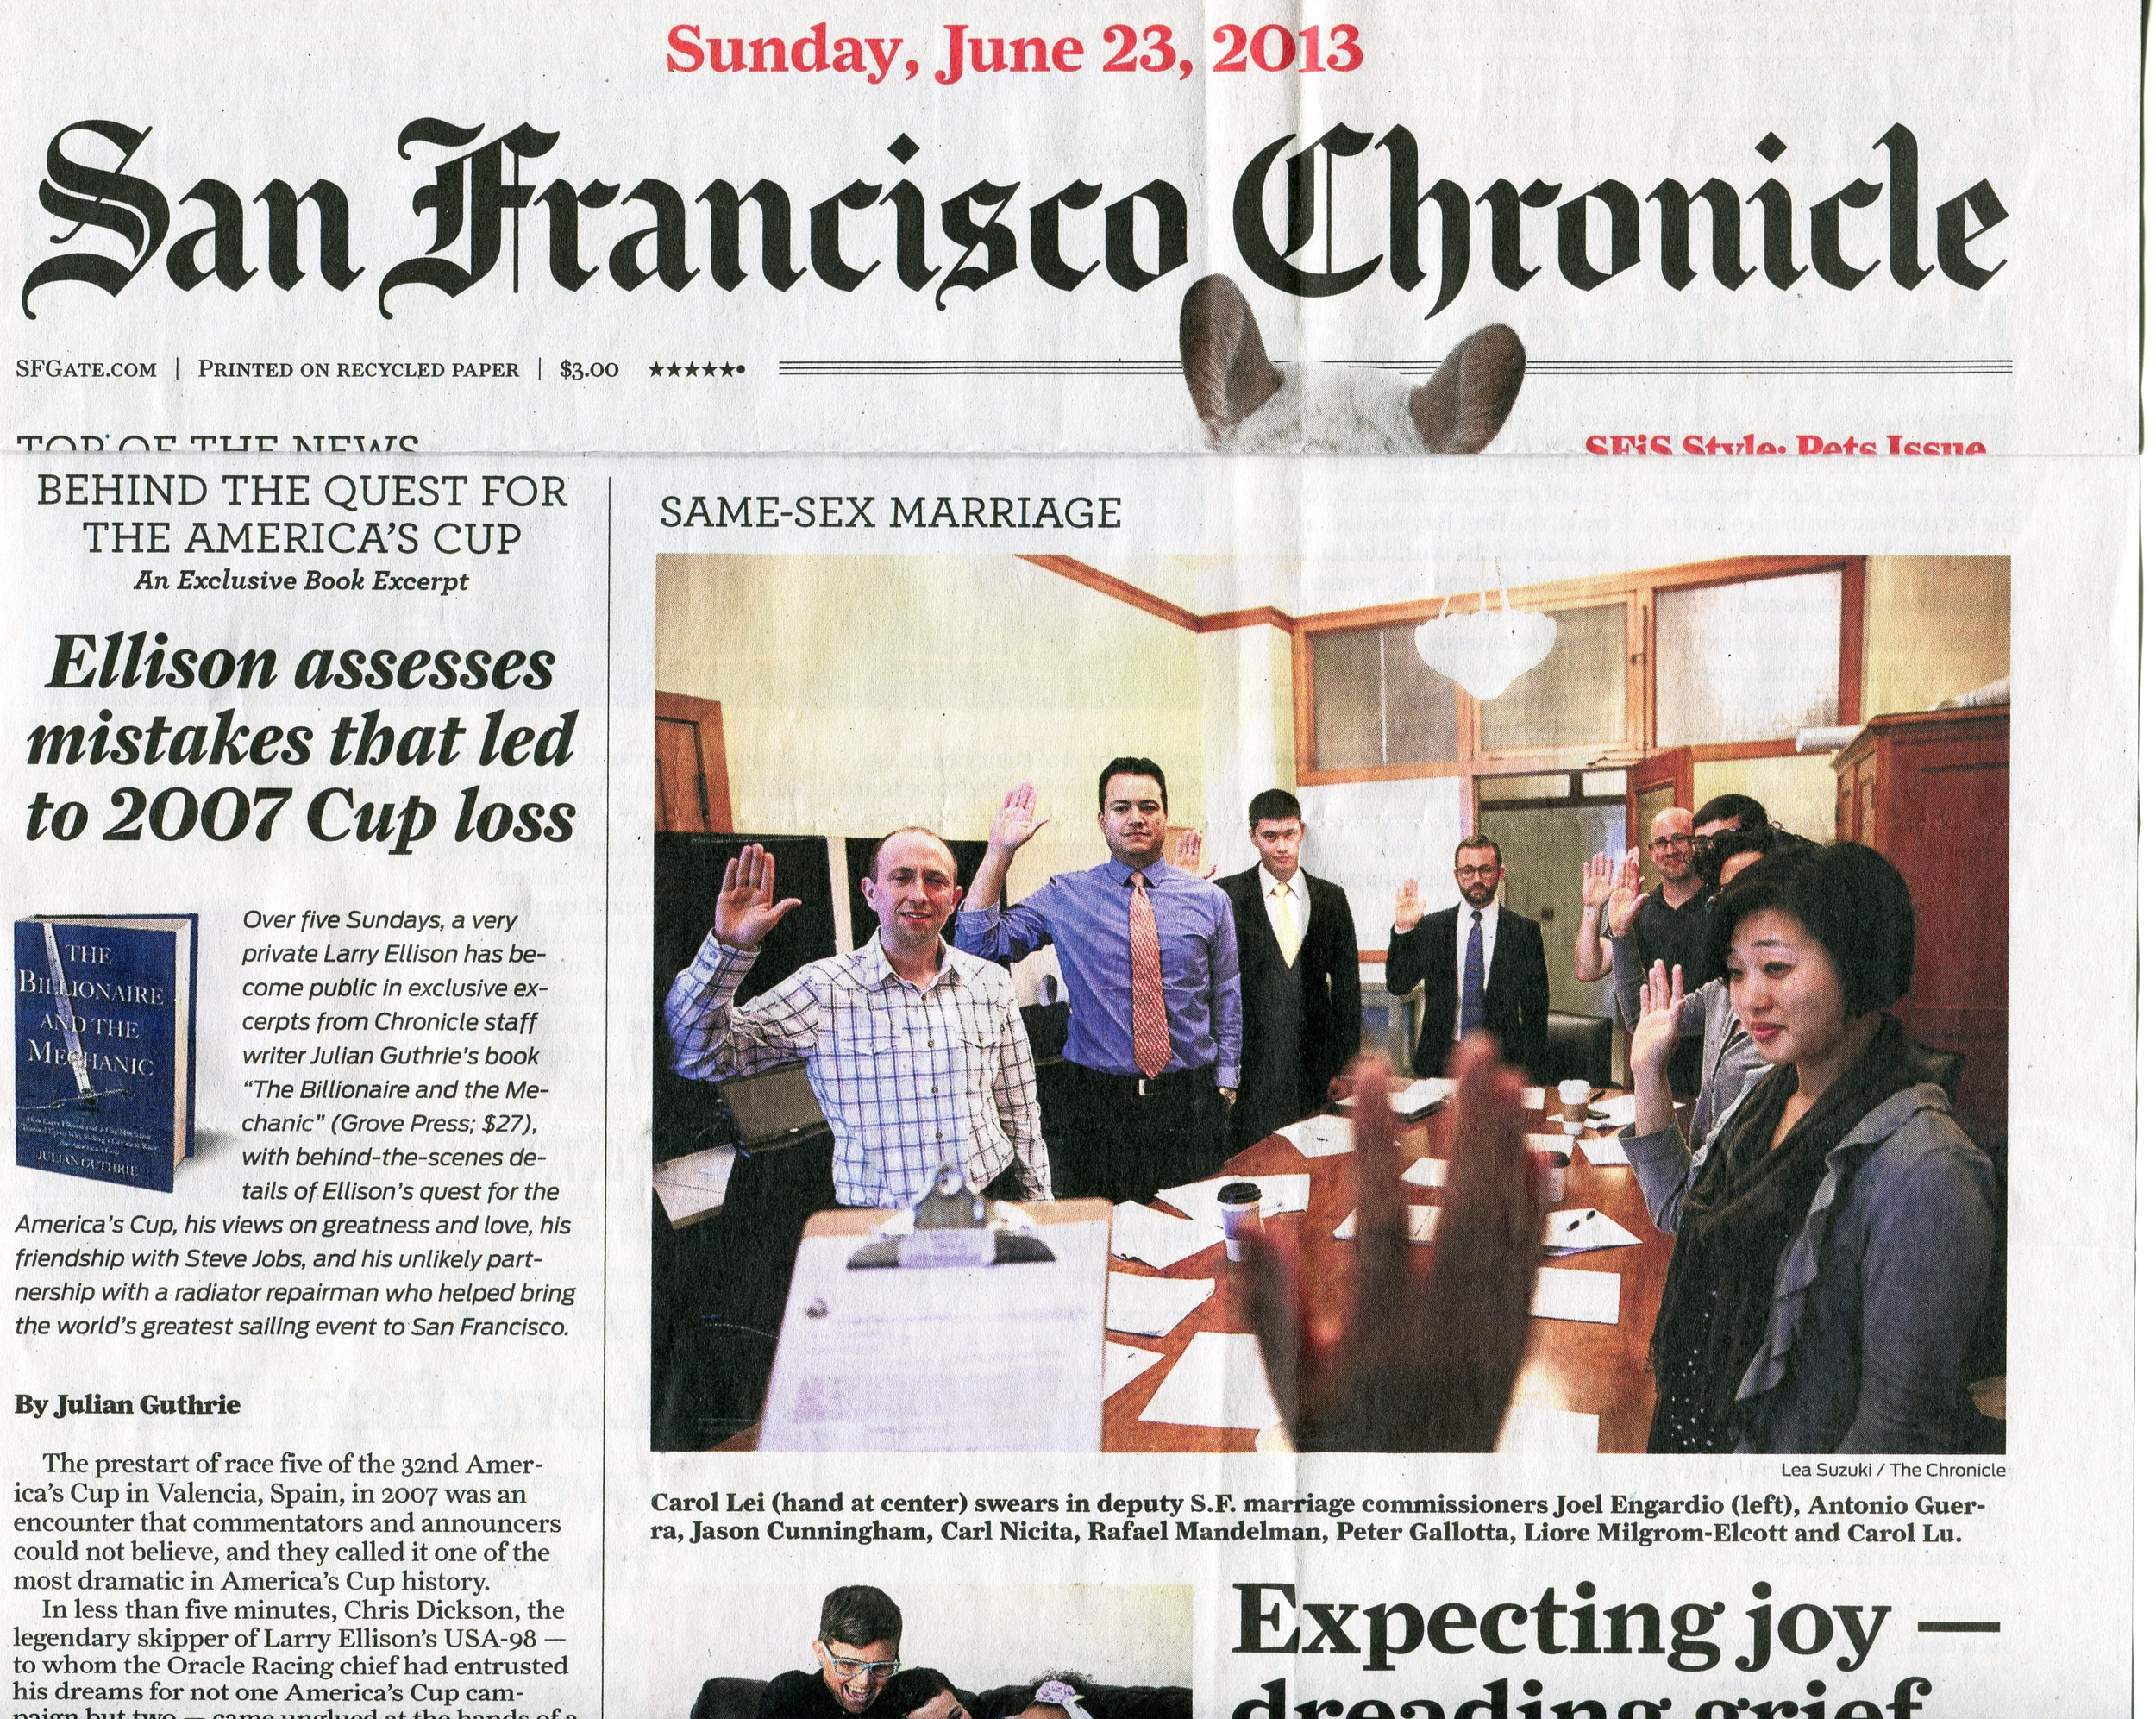 Front page photo of Joel Engardio sworn in as deputy marriage commissioner in advance of U.S. Supreme Court ruling to make same-sex marriage legal in California.